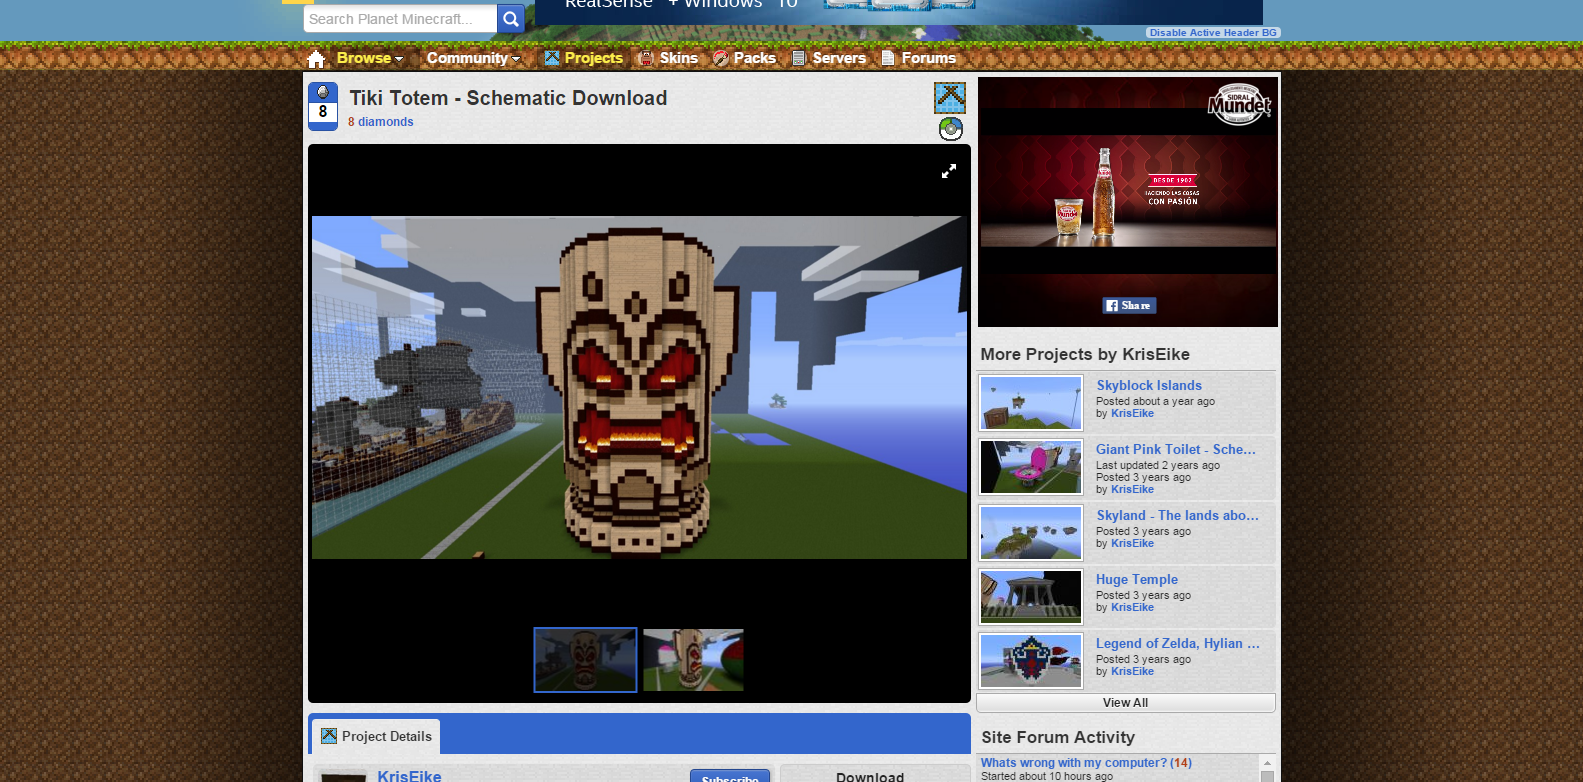 Tiki Totem   Schematic Download Minecraft Project.